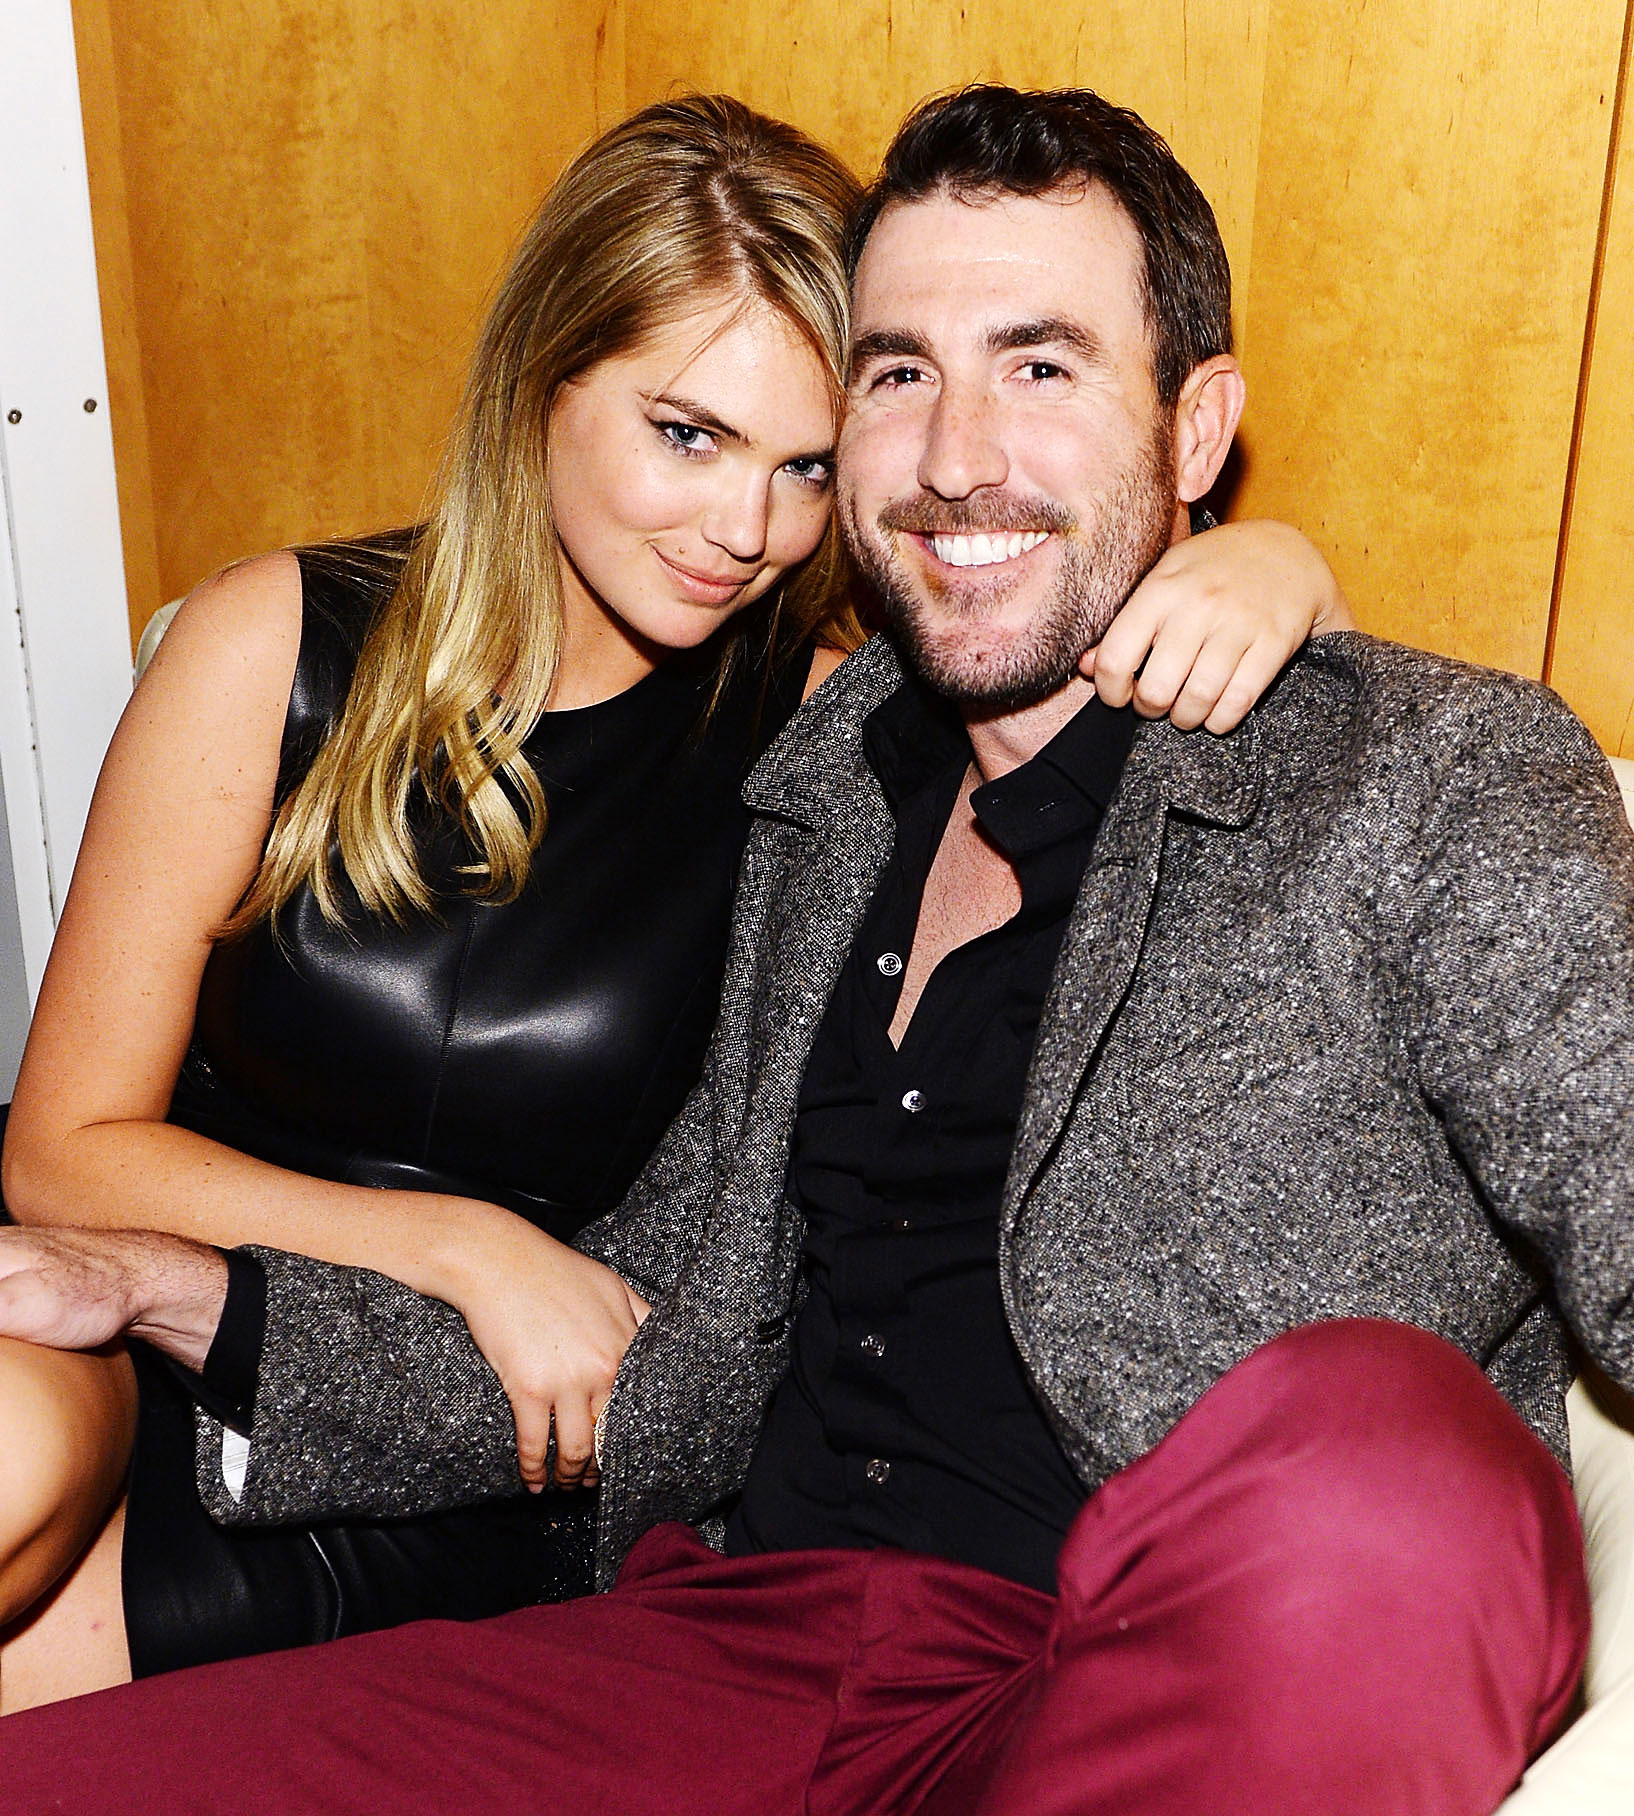 Justin Verlander Gushes About Kate Upton's 'Tremendous' Transition to Motherhood Four Months After Welcoming Daughter - Kate Upton and Justin Verlander attend the GQ Super Bowl Party 2014 sponsored by Patron Tequila, Van Heusen, and Miller Fortune on January 31, 2014 in New York City.